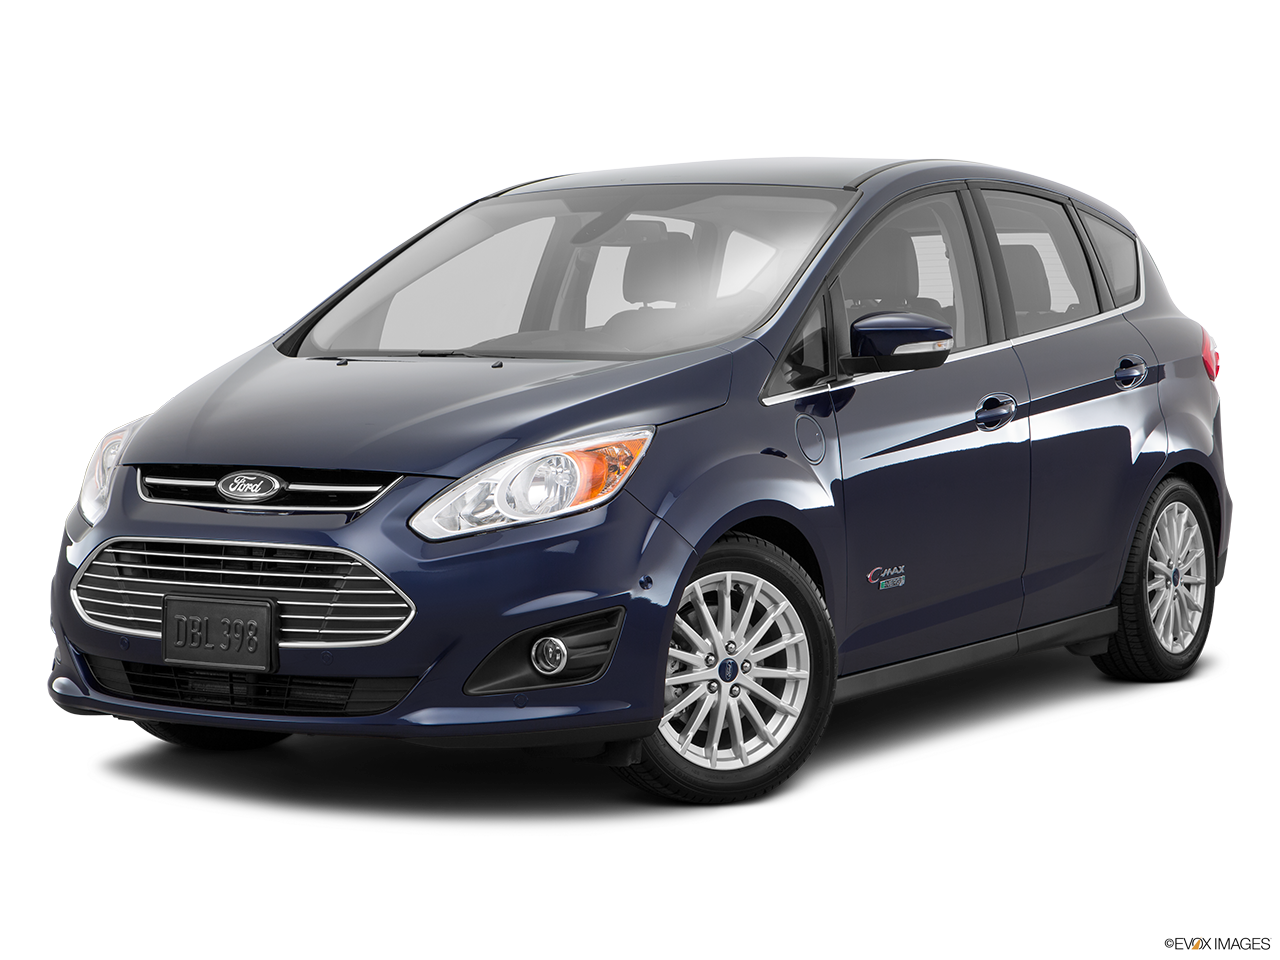 2016 ford c max dealer in harrisburg. Black Bedroom Furniture Sets. Home Design Ideas